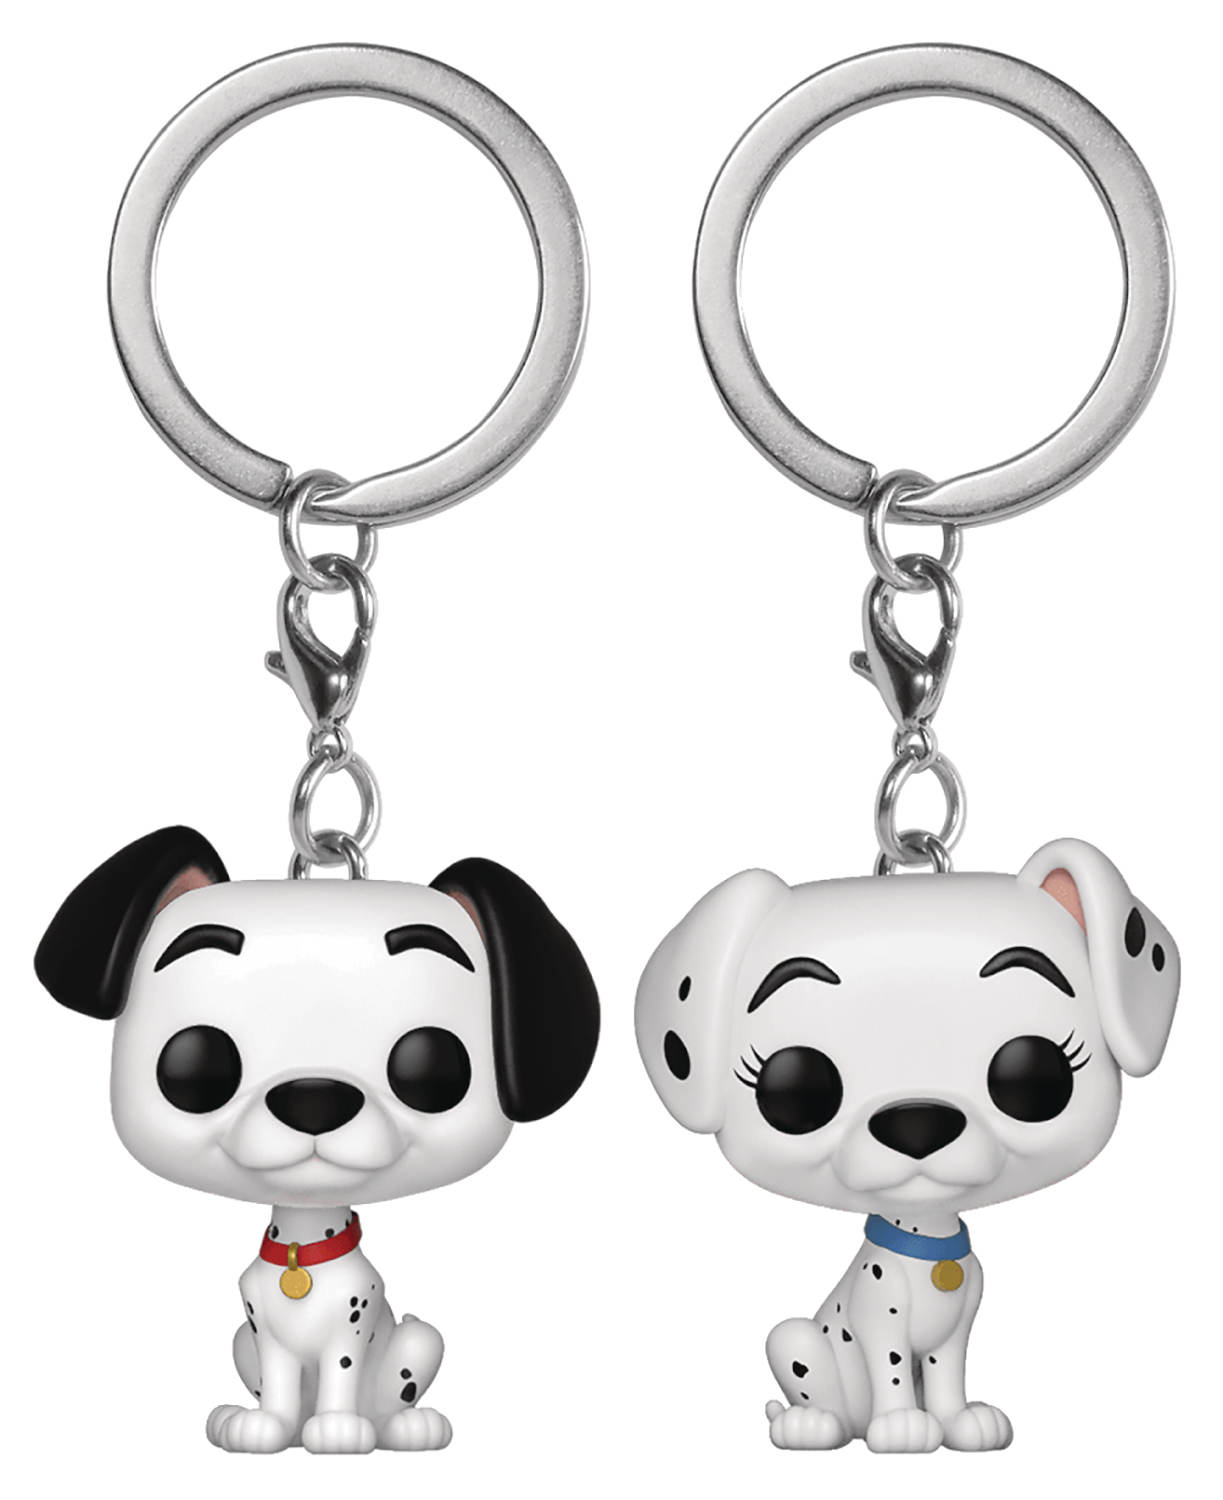 POP KEYCHAIN DALMATIONS PONGO & PERDITA 2PK VIN FIG